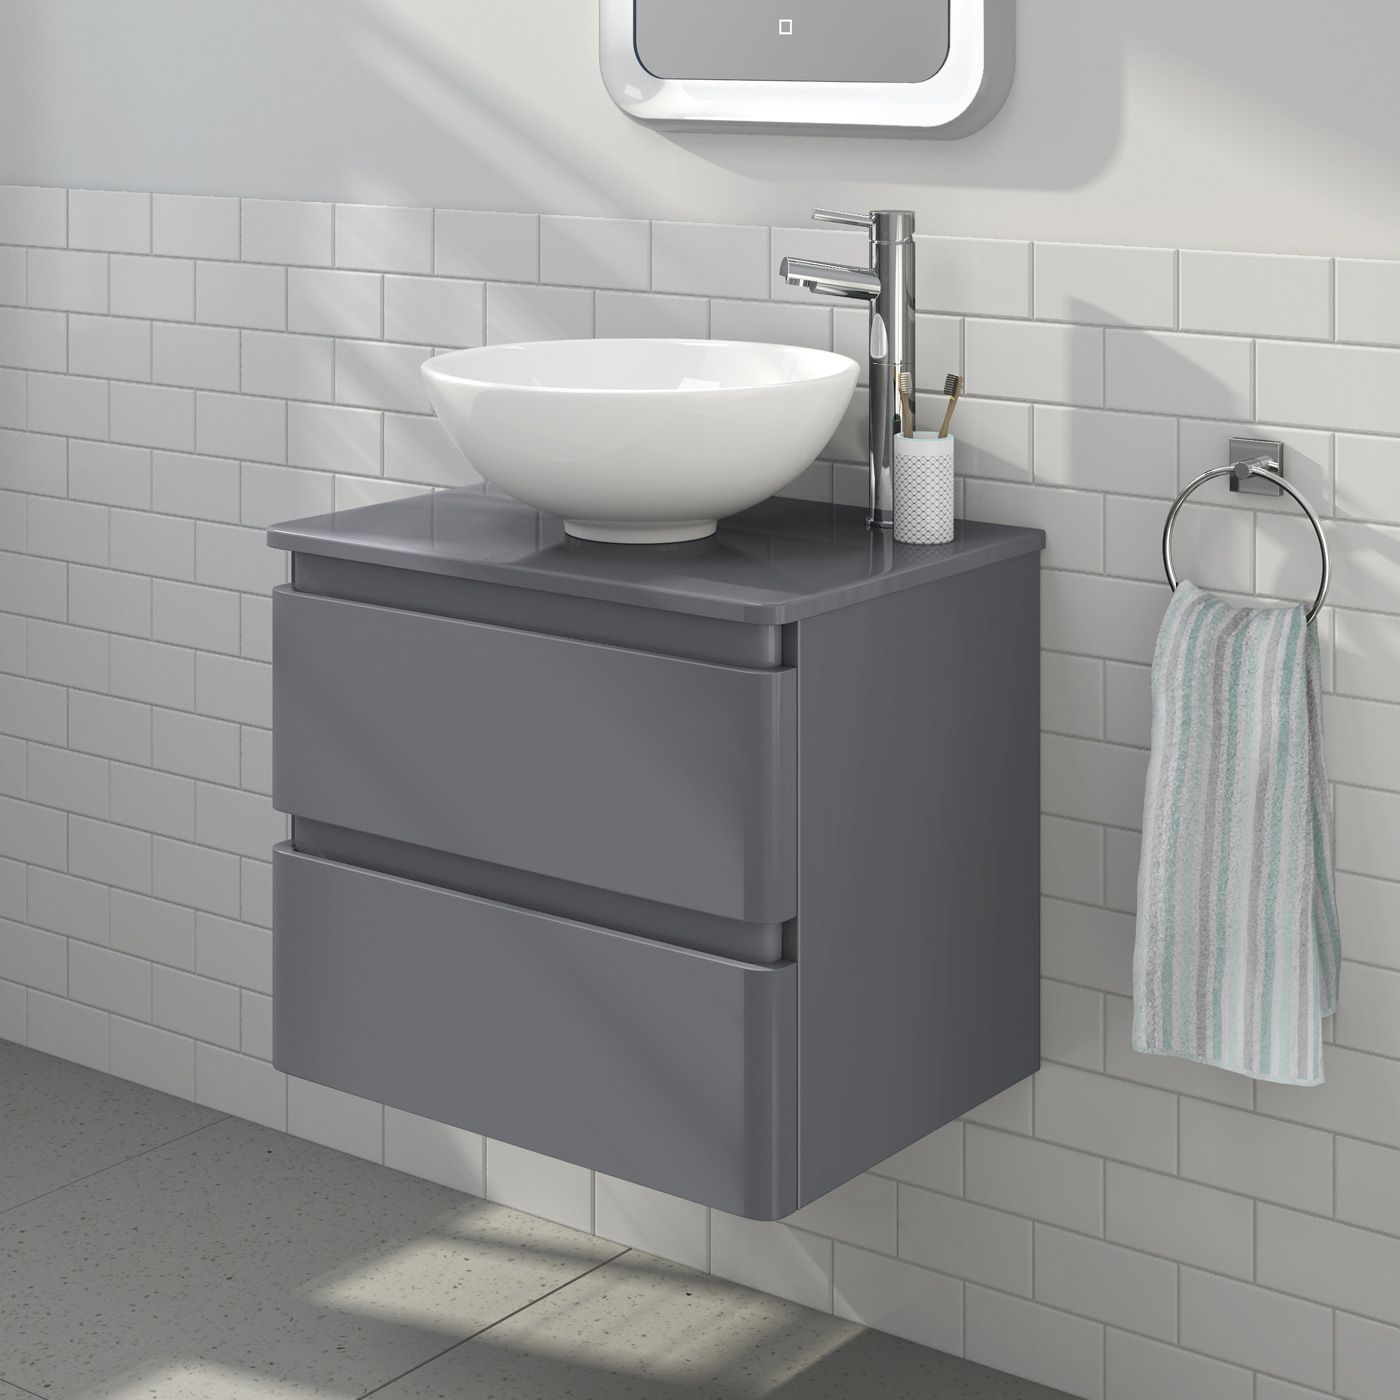 vanities updated incredible with pics sloan remodelideas bathroom grey popular paris and ideas for wayfair vanity annie